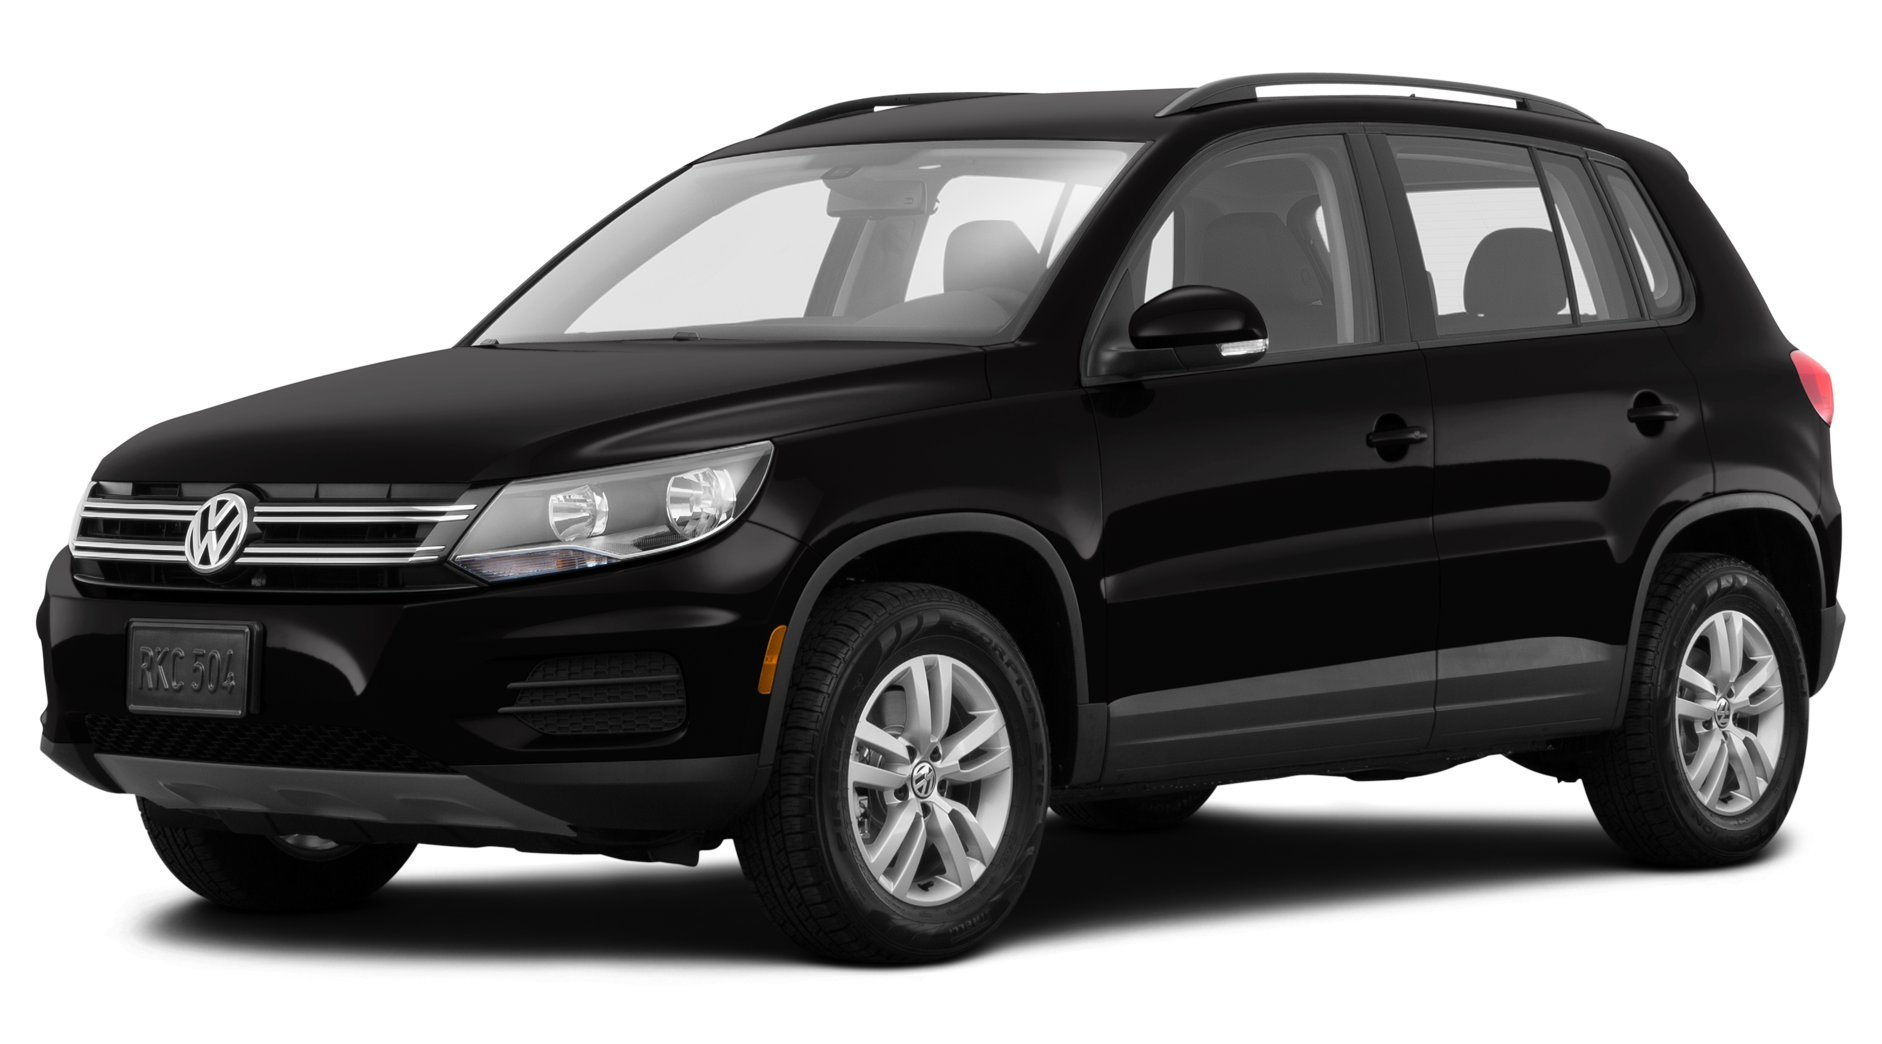 Amazon 2016 Acura RDX Reviews and Specs Vehicles